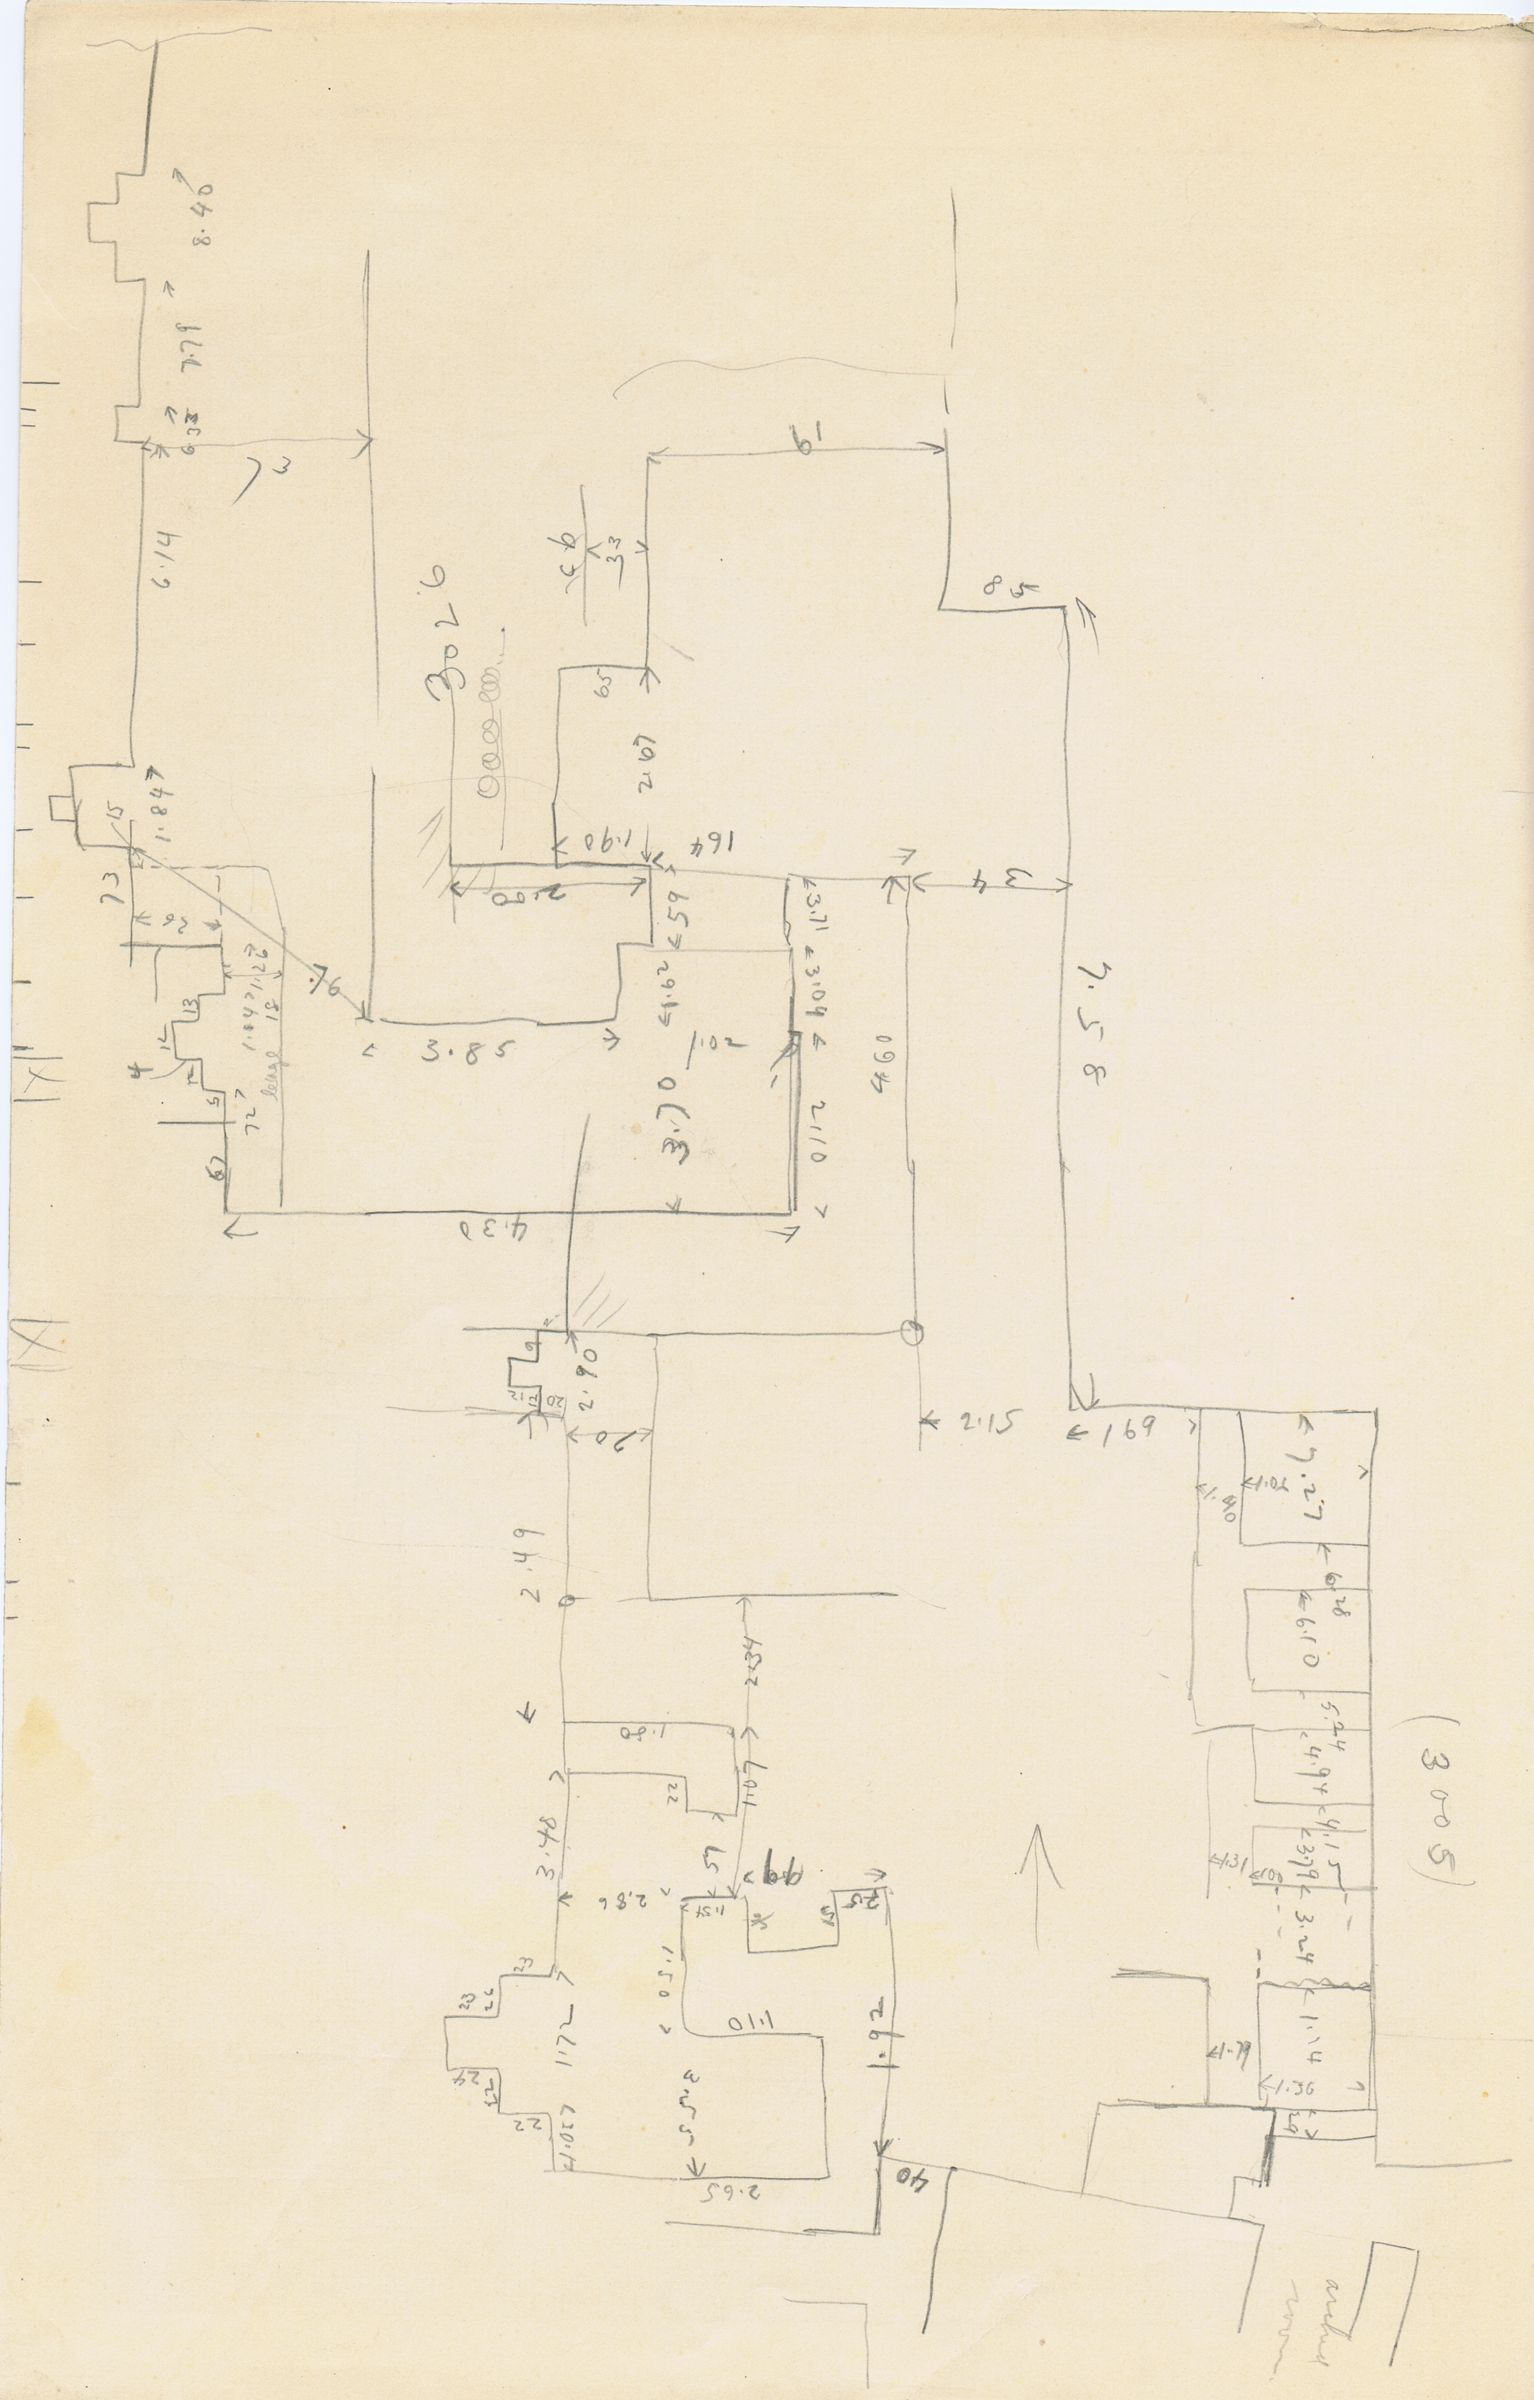 Maps and plans: Sketch plan of G 3005, G 3008, G 3024, G 3025, G 3026, G 3034, G 3035